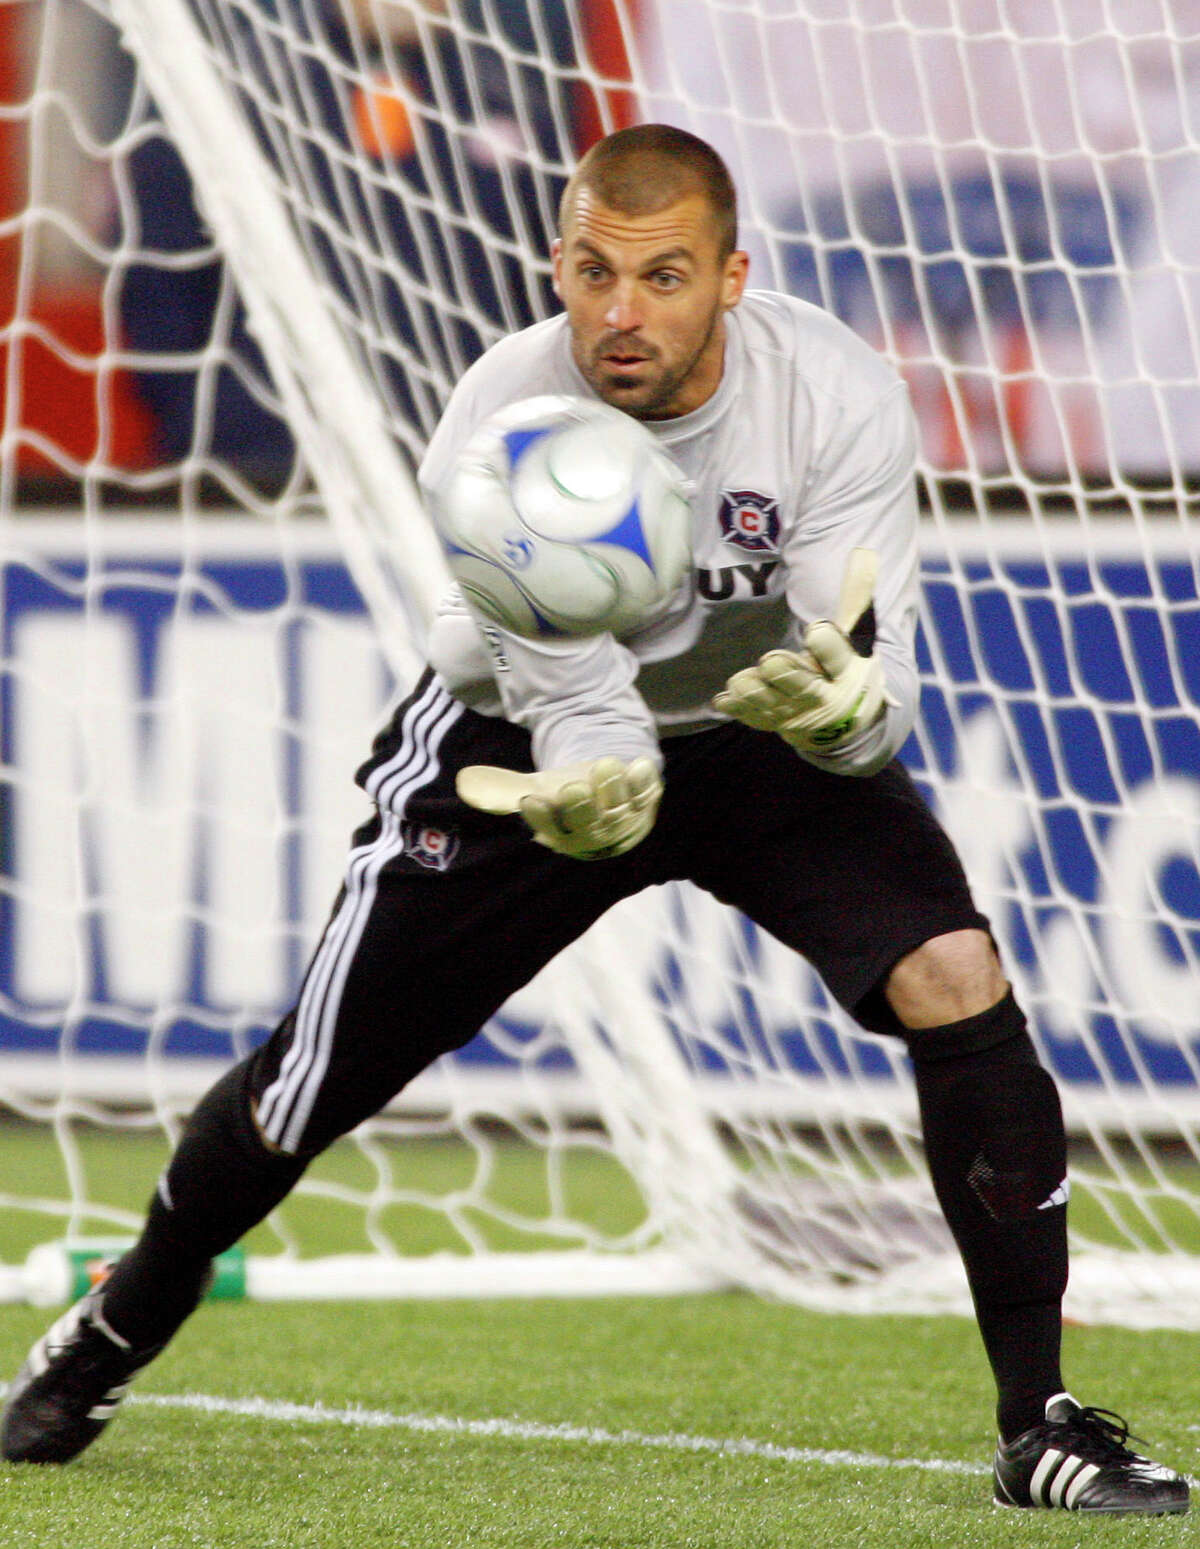 Chicago Fire goalkeeper Jon Busch makes a save against the New England Revolution during the second half of Game 1 of the MLS Eastern Conference soccer playoff series in Foxborough, Mass., Thursday, Oct. 30, 2008. The game ended tied at 0-0.